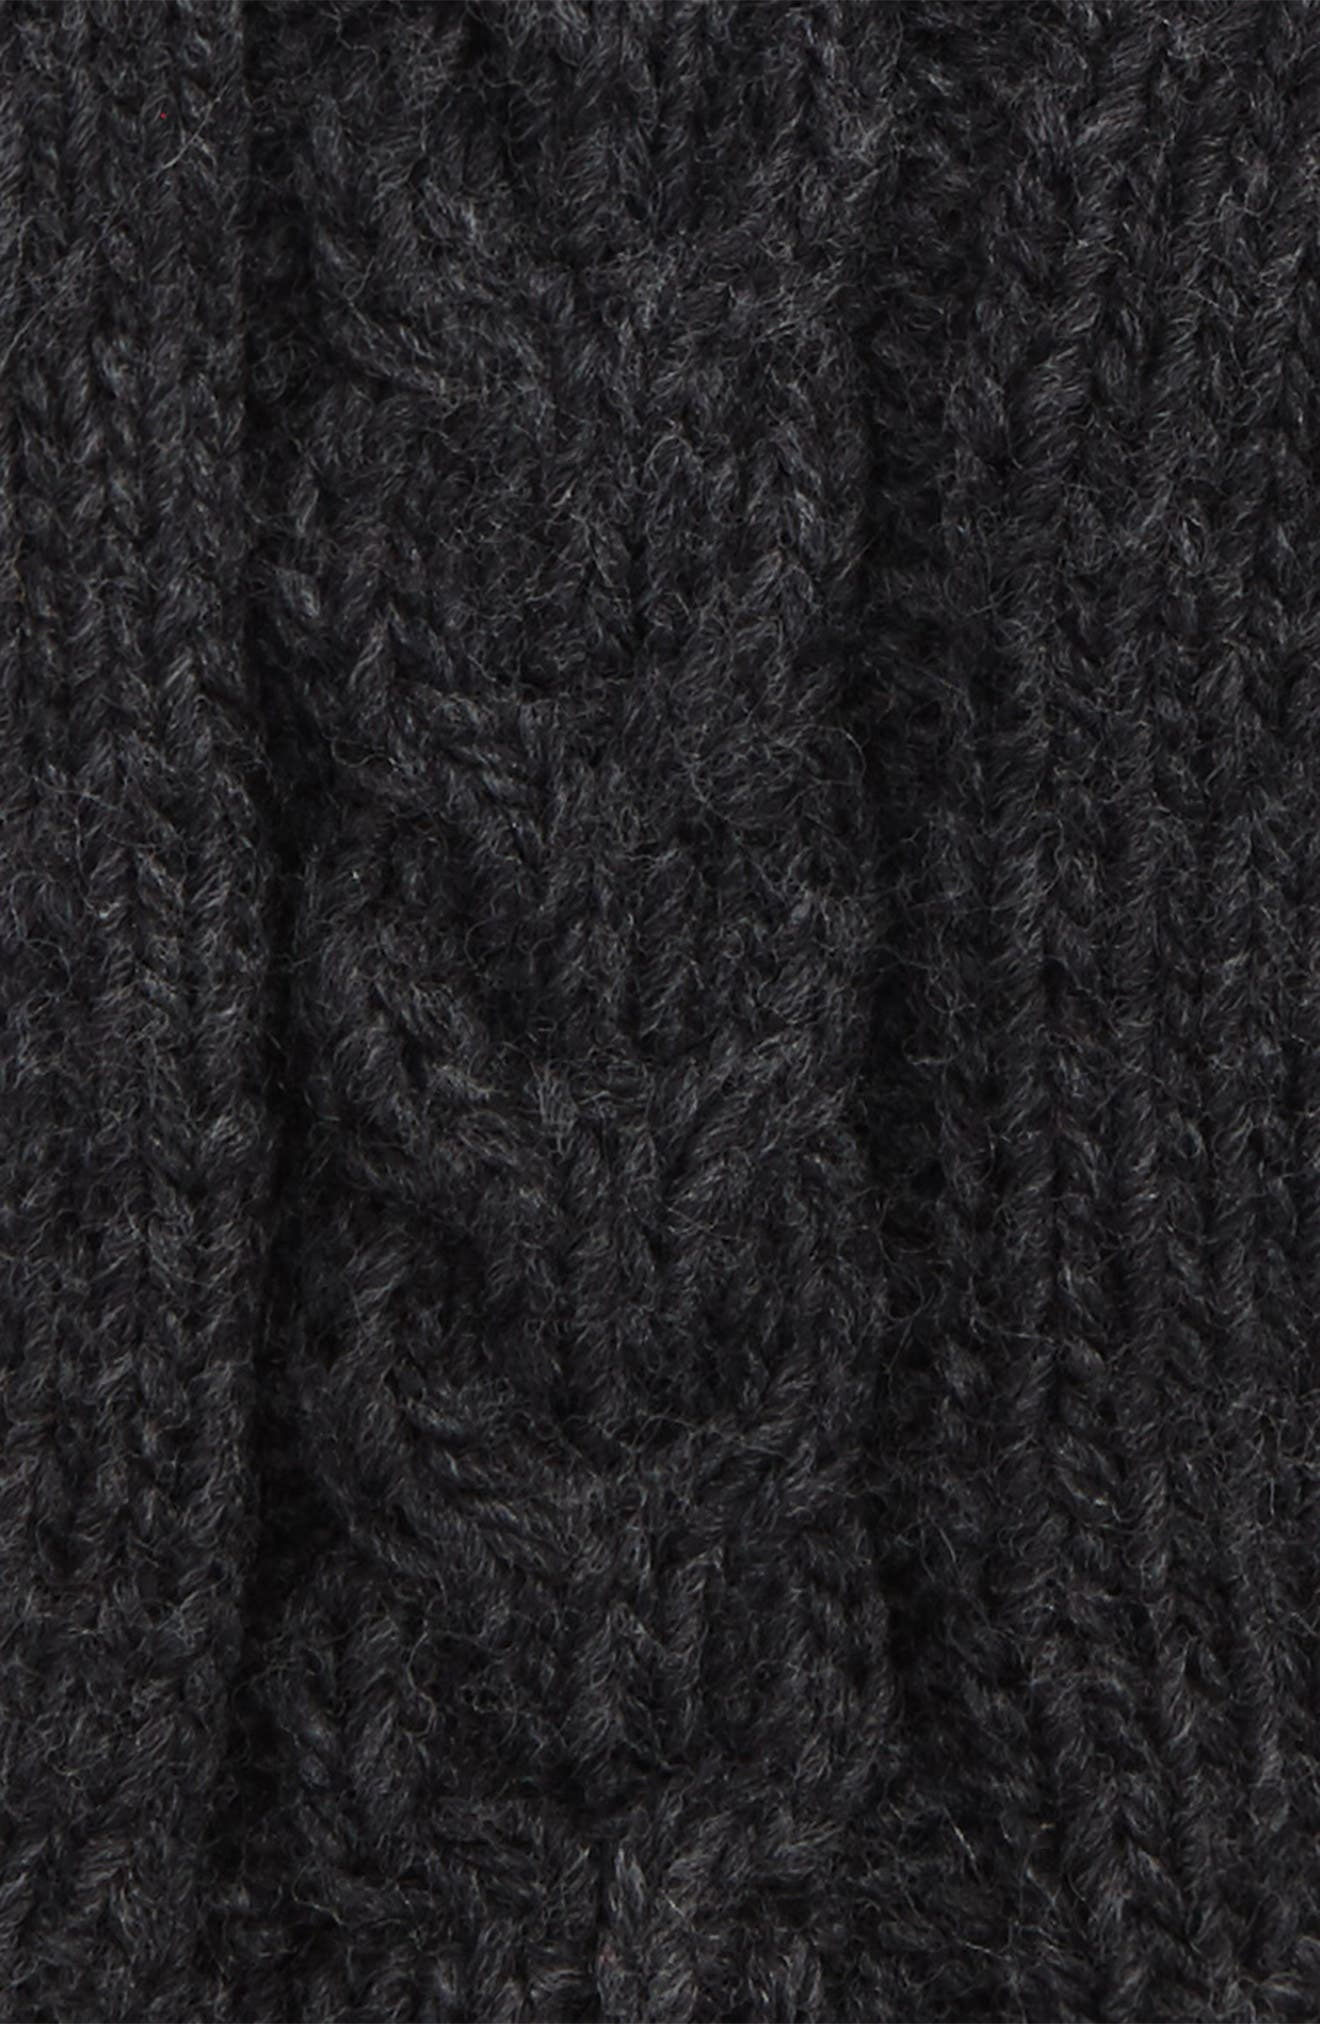 Alternate Image 2  - NirvannaDesigns Cable Knit Hand Warmers